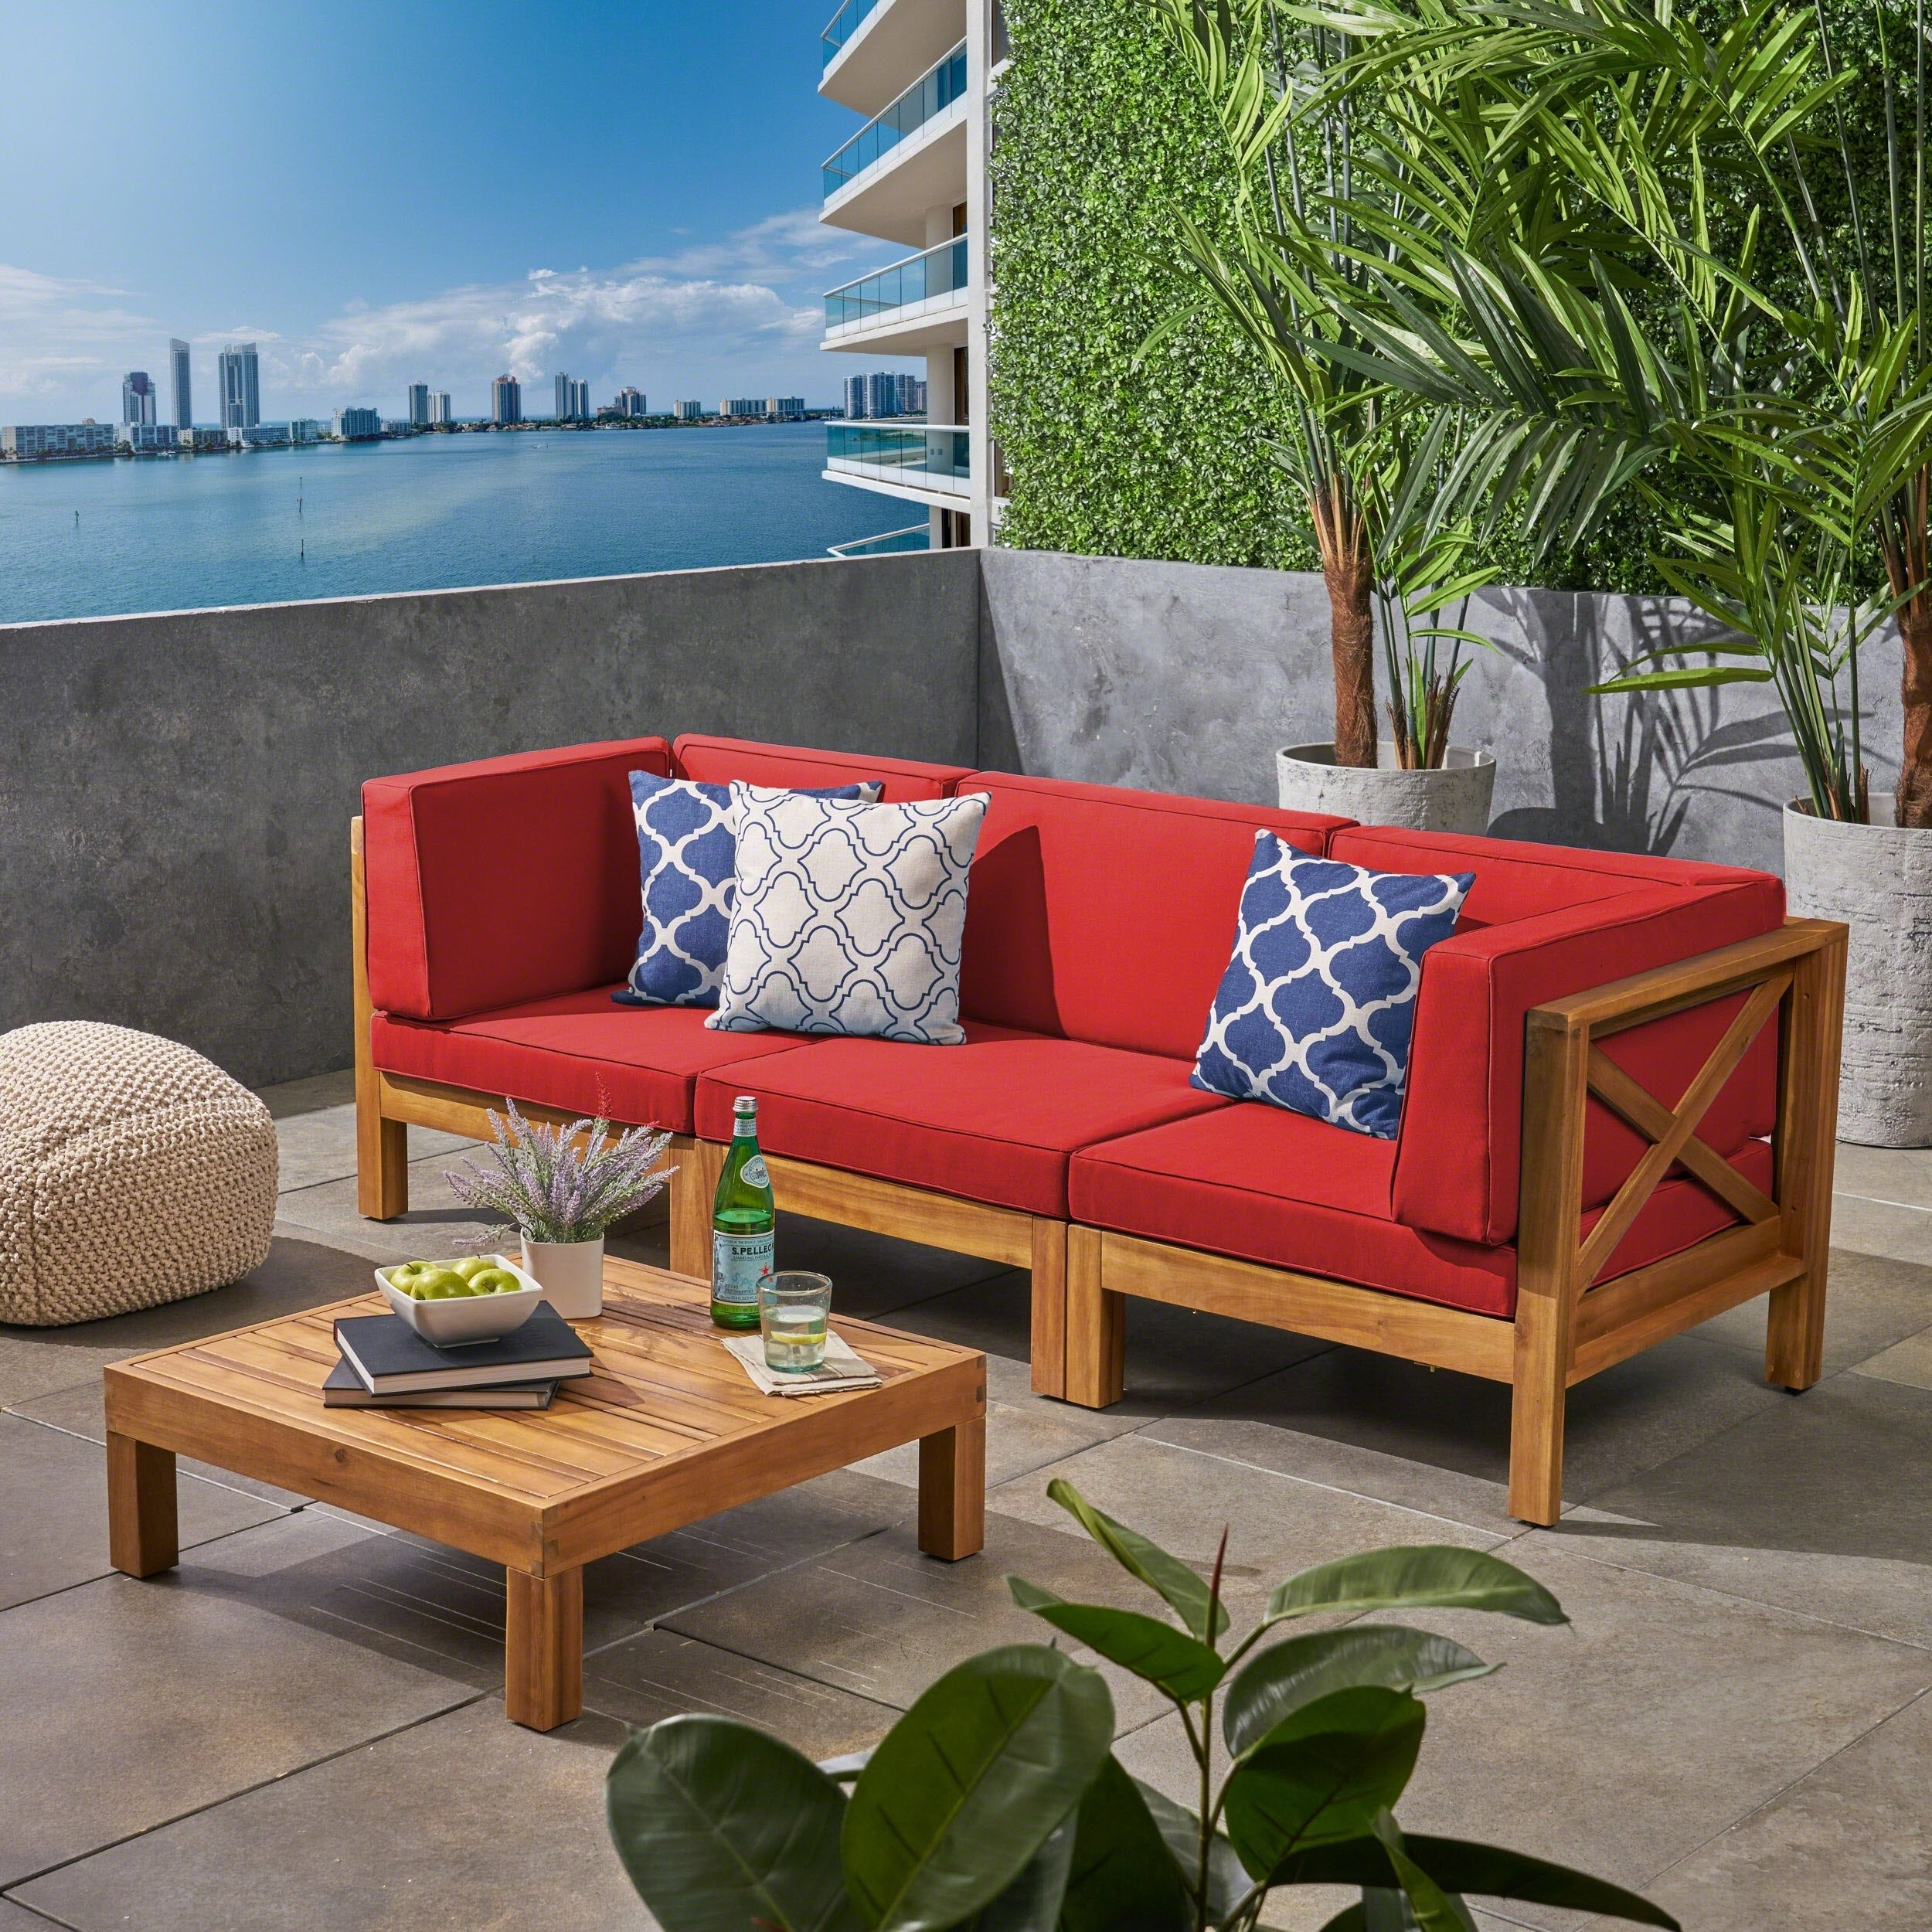 Brava Outdoor 3-Seater Acacia Wood Sectional Sofa Set with ...